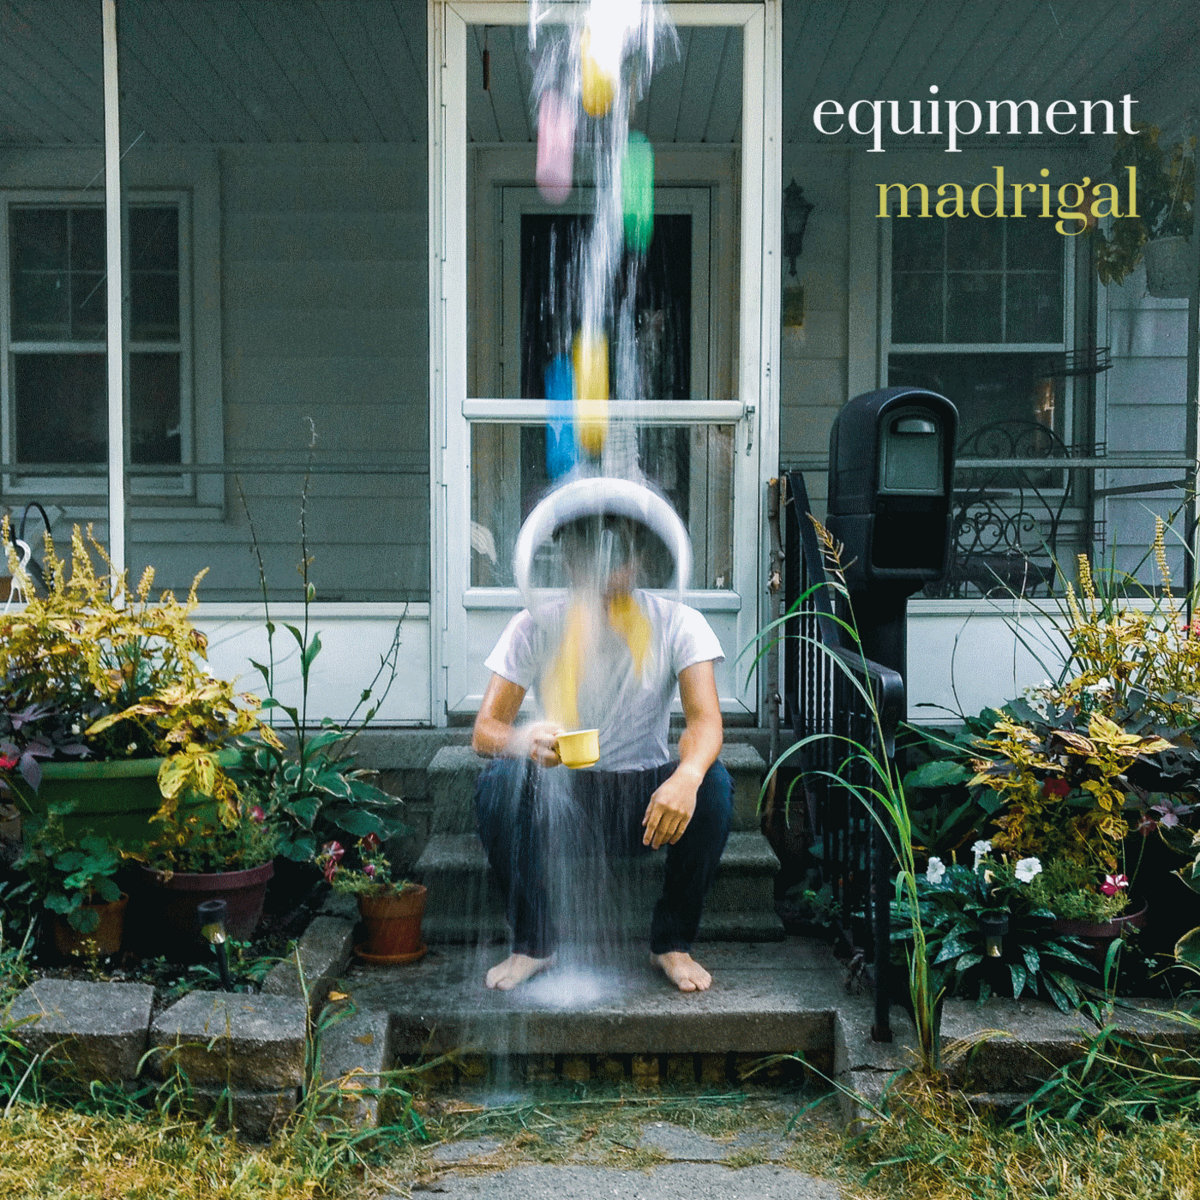 Equipment - Madrigal / Chump